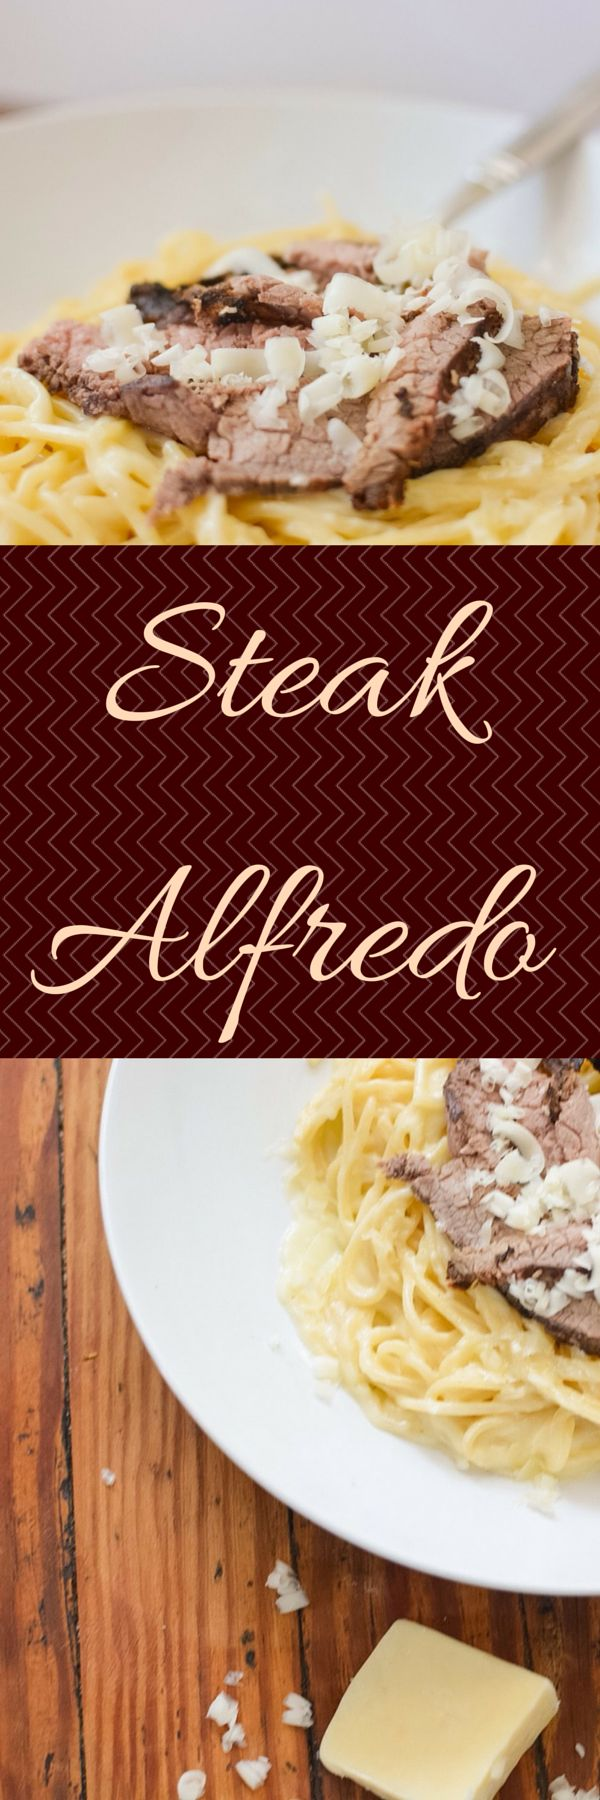 A rich and decadent dish, Steak Alfredo pasta has tender marinated steak and a creamy Alfredo sauce.  Spoil your family with a Steak Alfredo pasta dish this weekend.